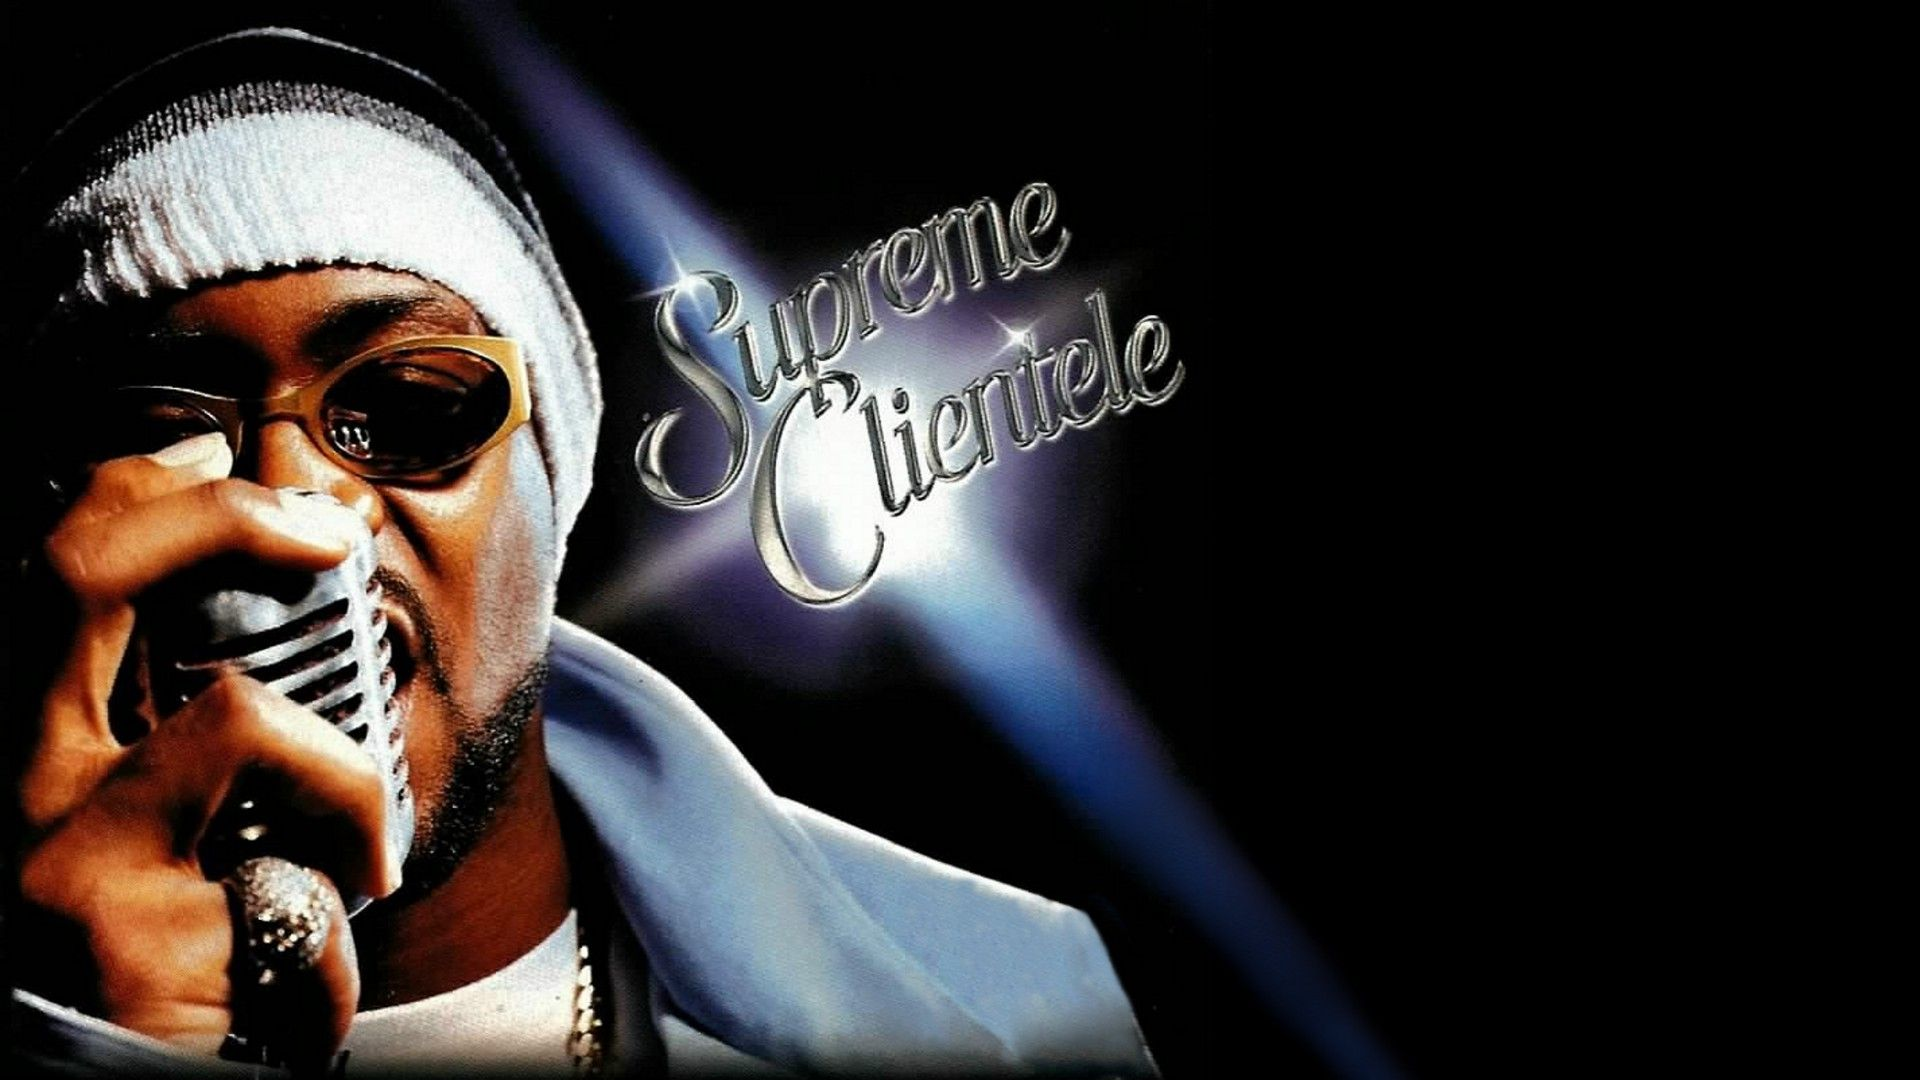 1920x1080 Wet Cement Wallpapers: Ghostface Killah - Supreme Clientele ...